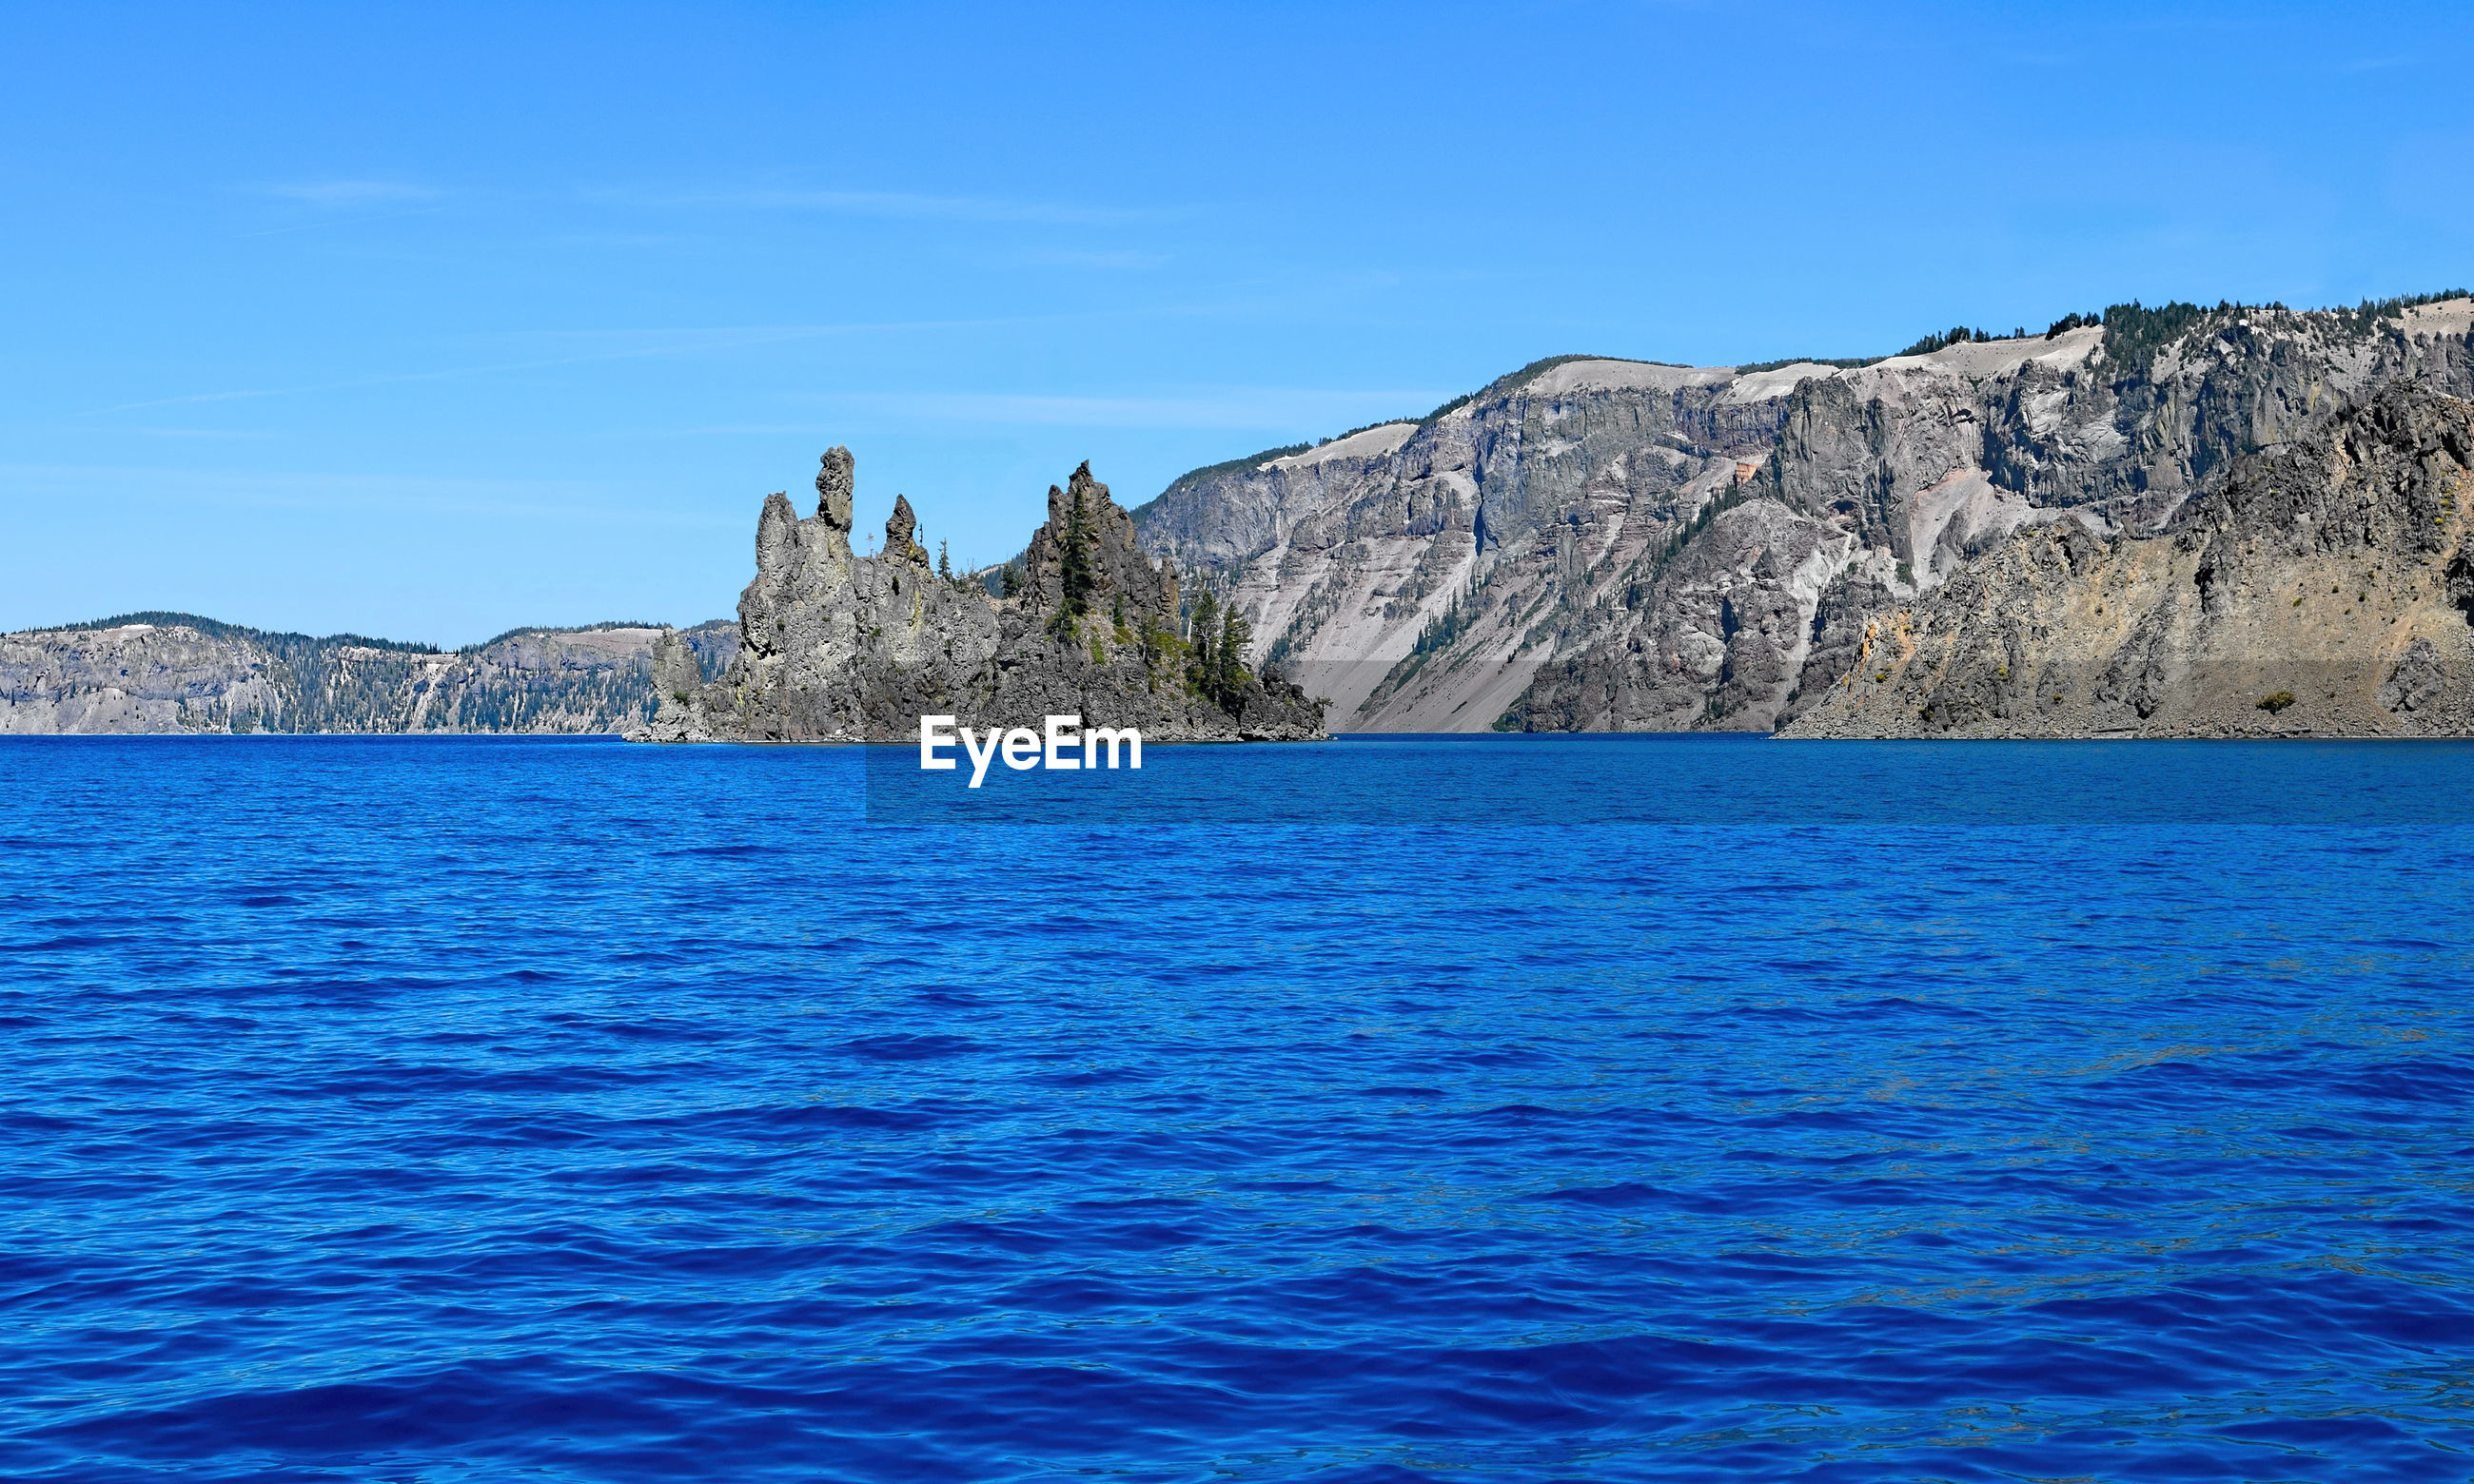 SCENIC VIEW OF SEA AND ROCK FORMATION AGAINST BLUE SKY